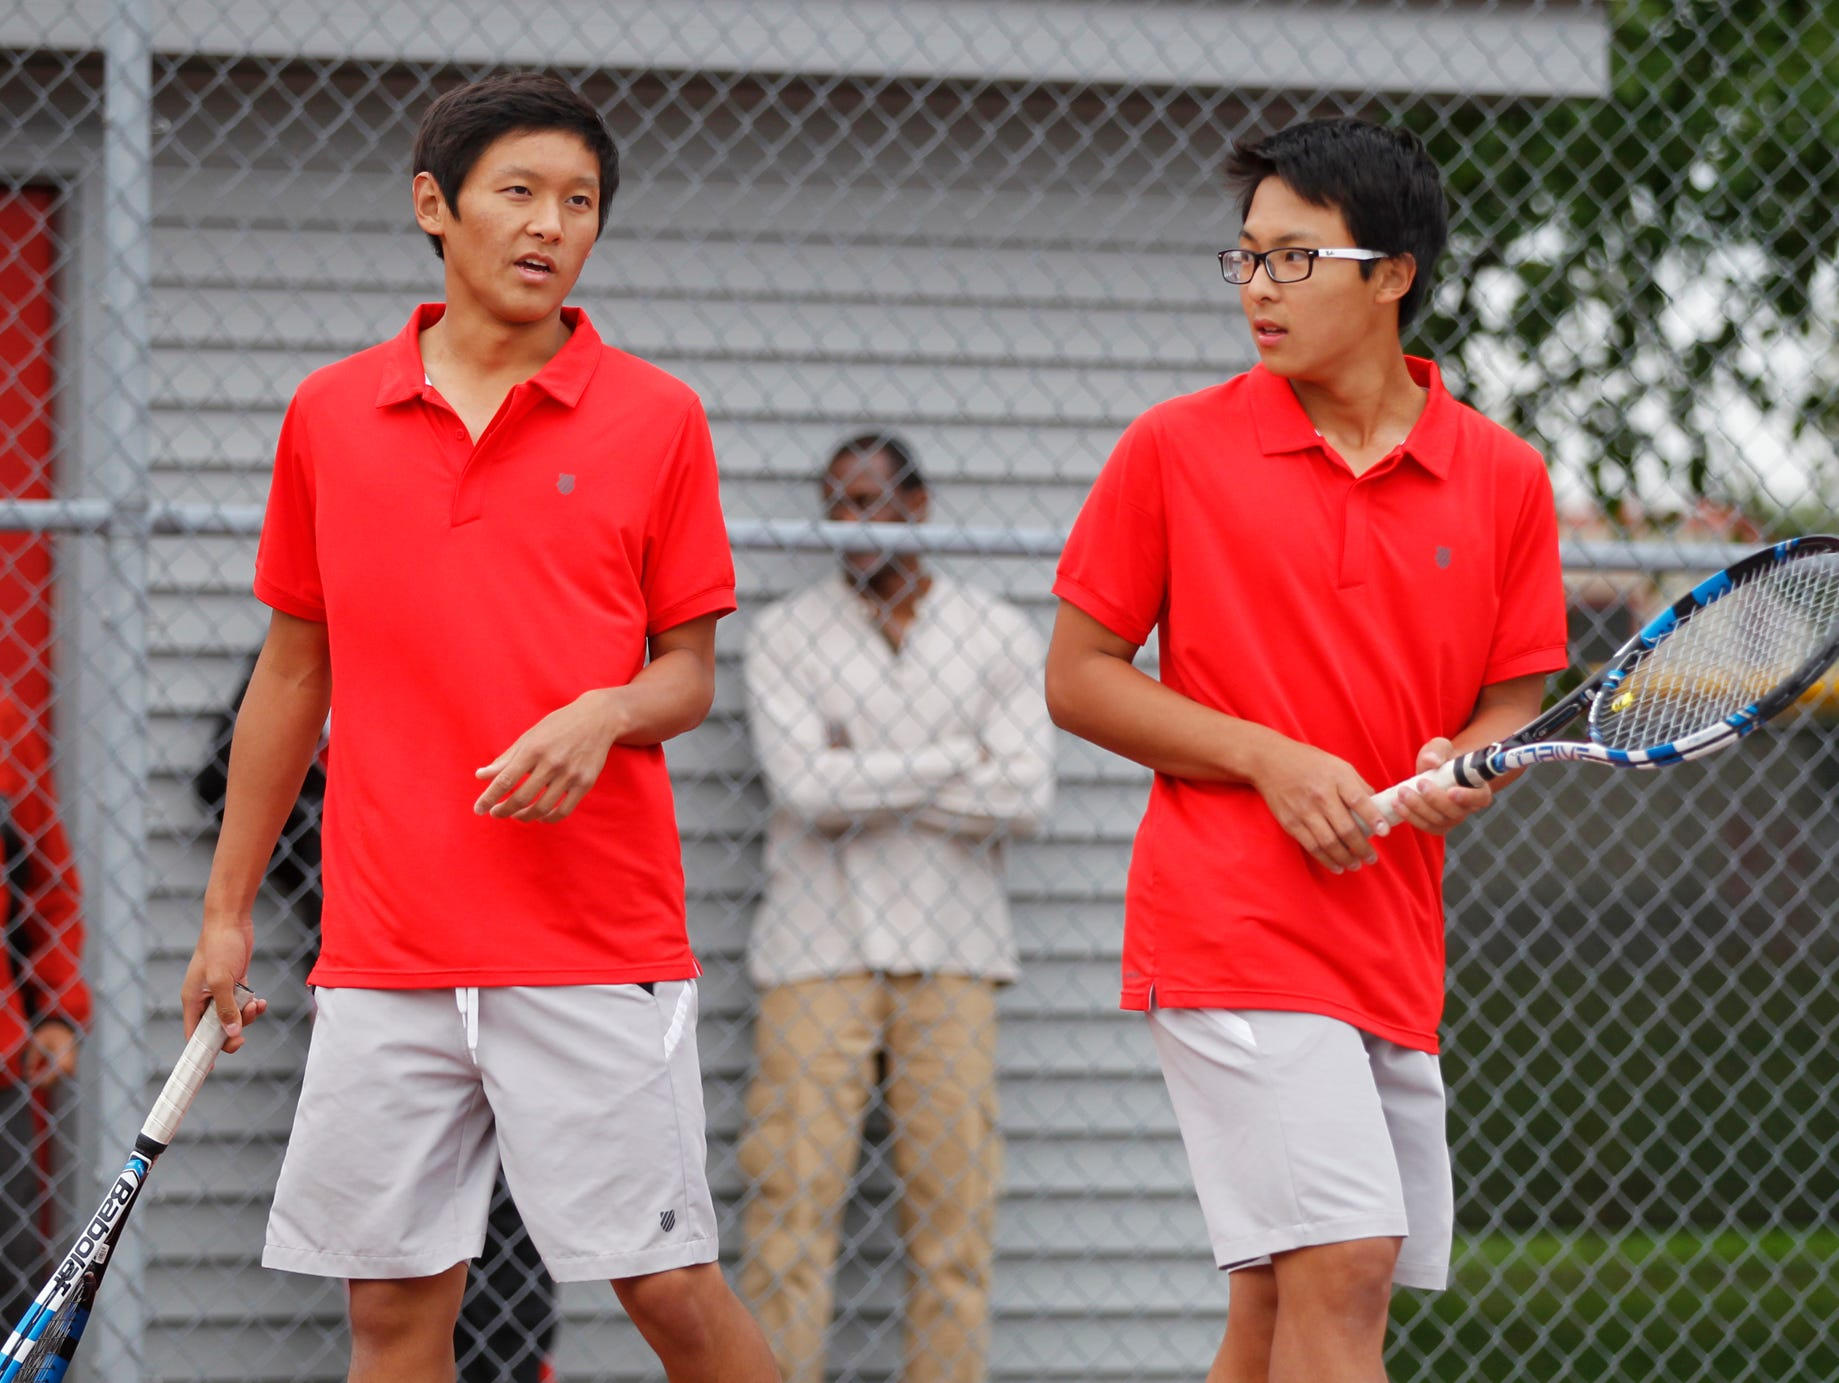 West Lafayette's Jethro Zhou, left, and Brian Mi celebrate a point against Lafayette Jeff's Aden Beaver and Brayden Williams at No. 1 doubles during the boys tennis sectional championship Friday, October 2, 2015, at Cumberland Courts in West Lafayette.